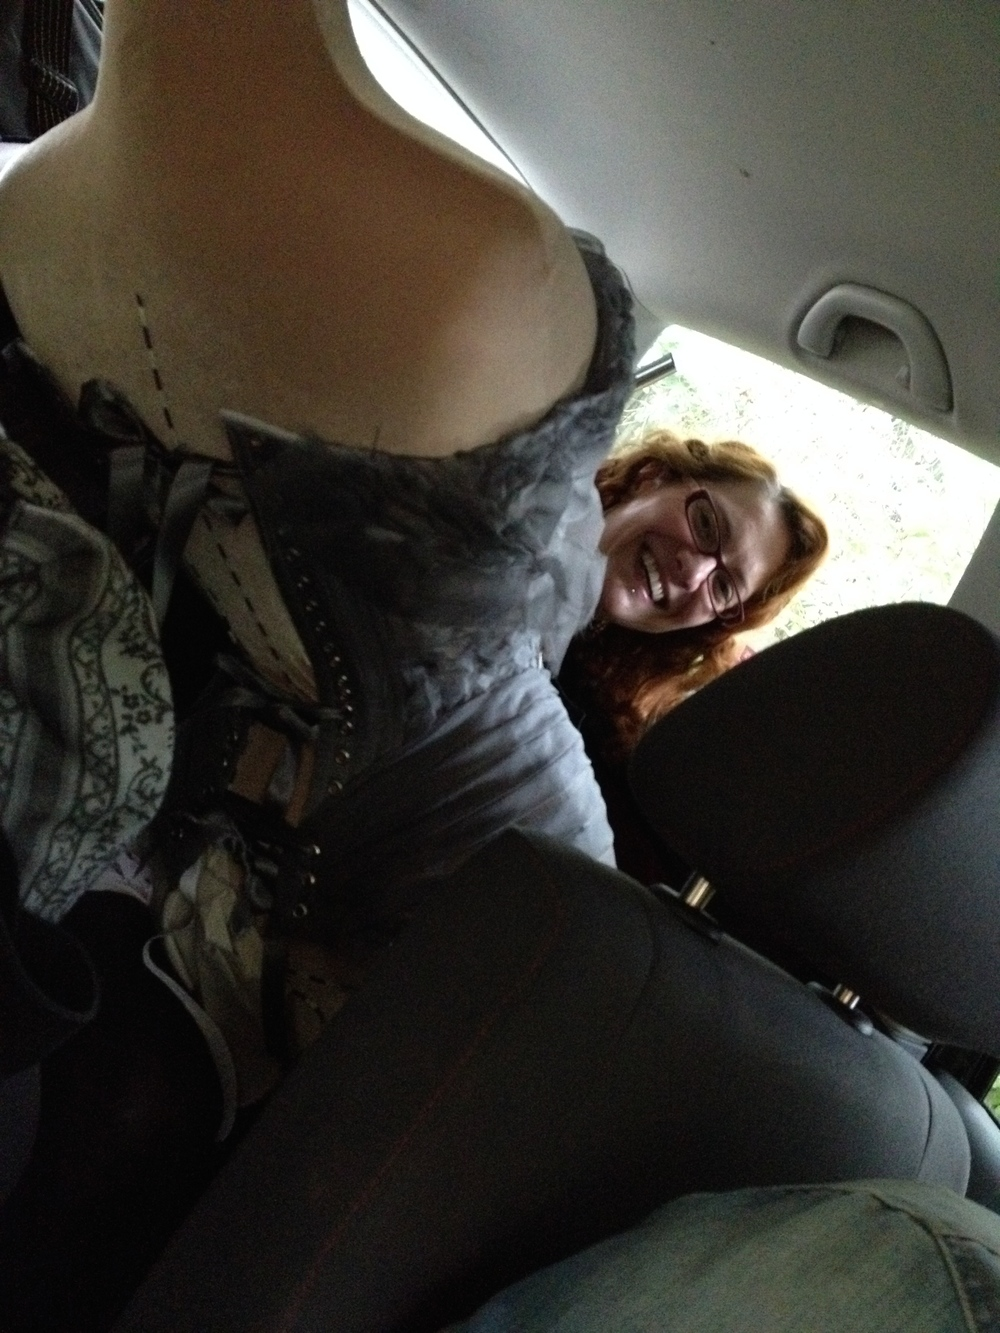 Actually Gerry never really stopped making her Jesus Corset, until the moment she needed it!  Here she is in the packed car on the way to Jesus, needle in hand.